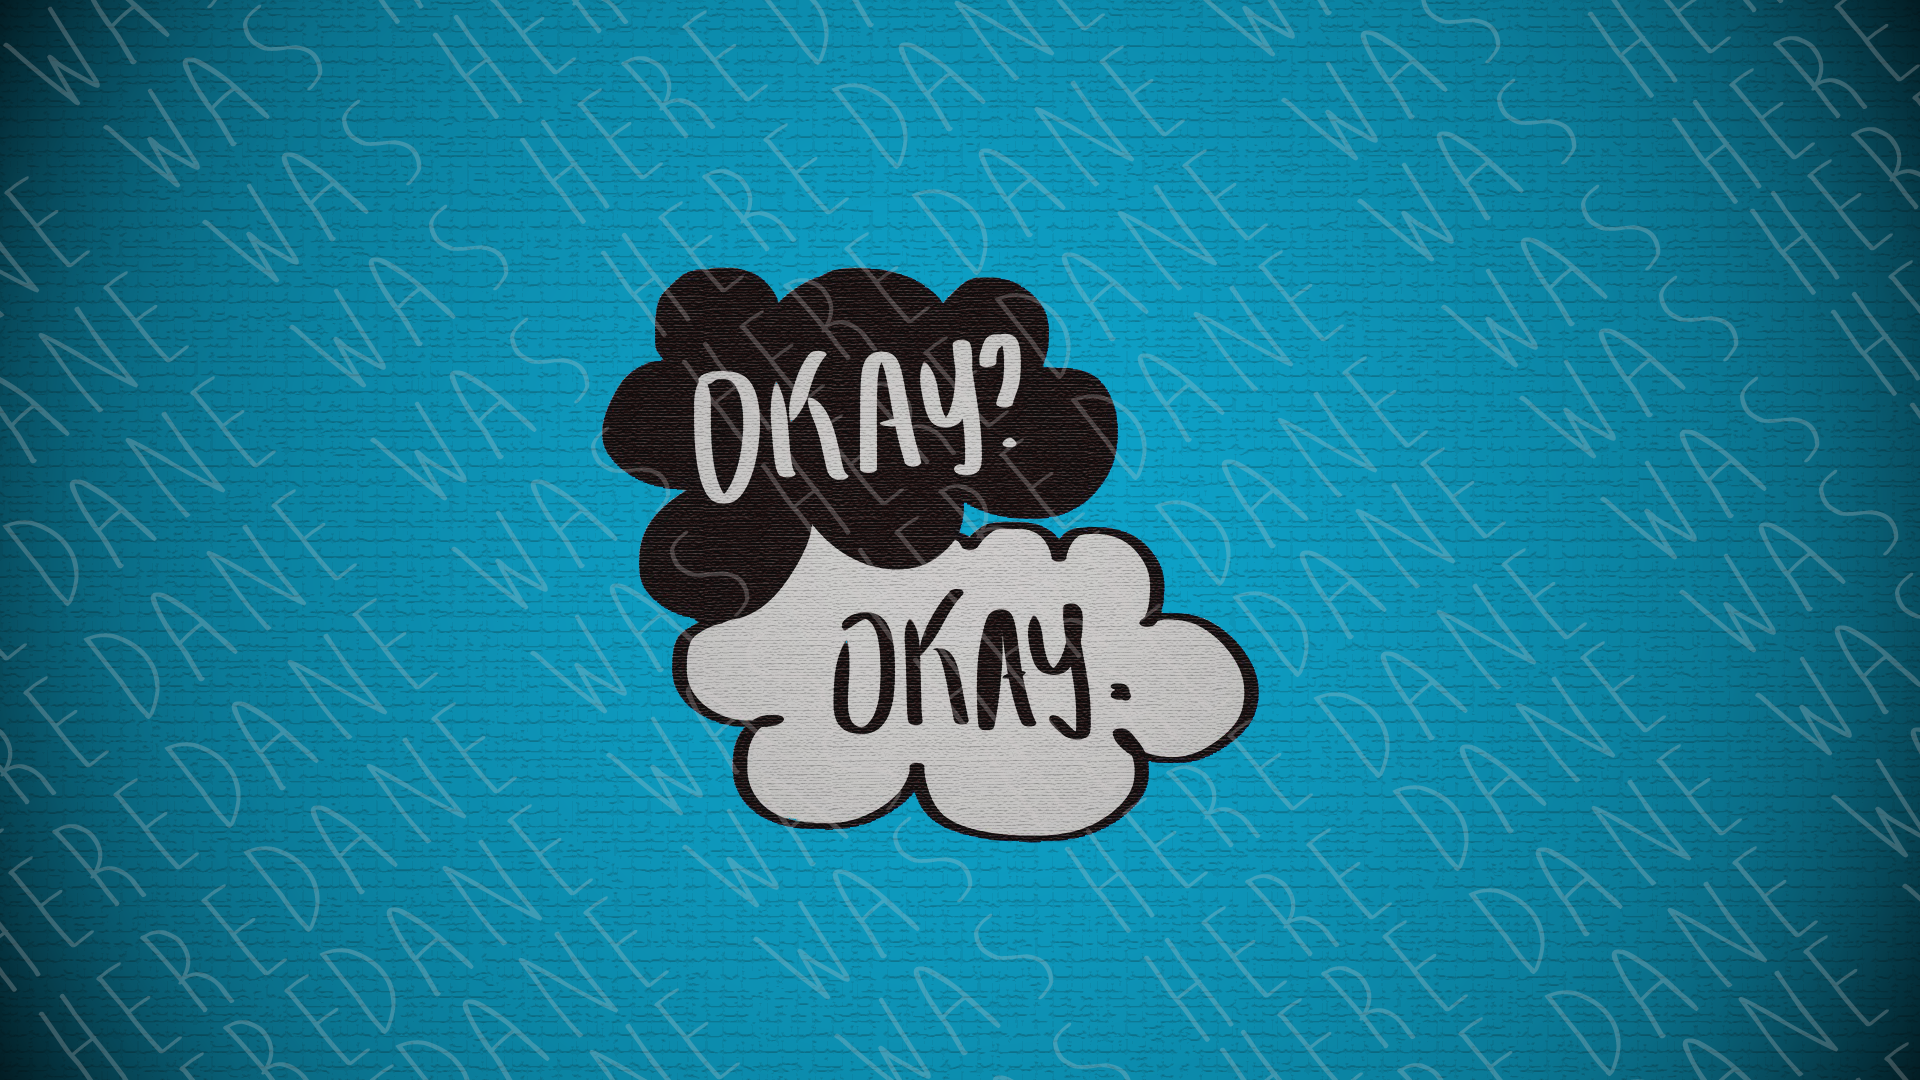 the fault in our stars images the fault in our stars hd